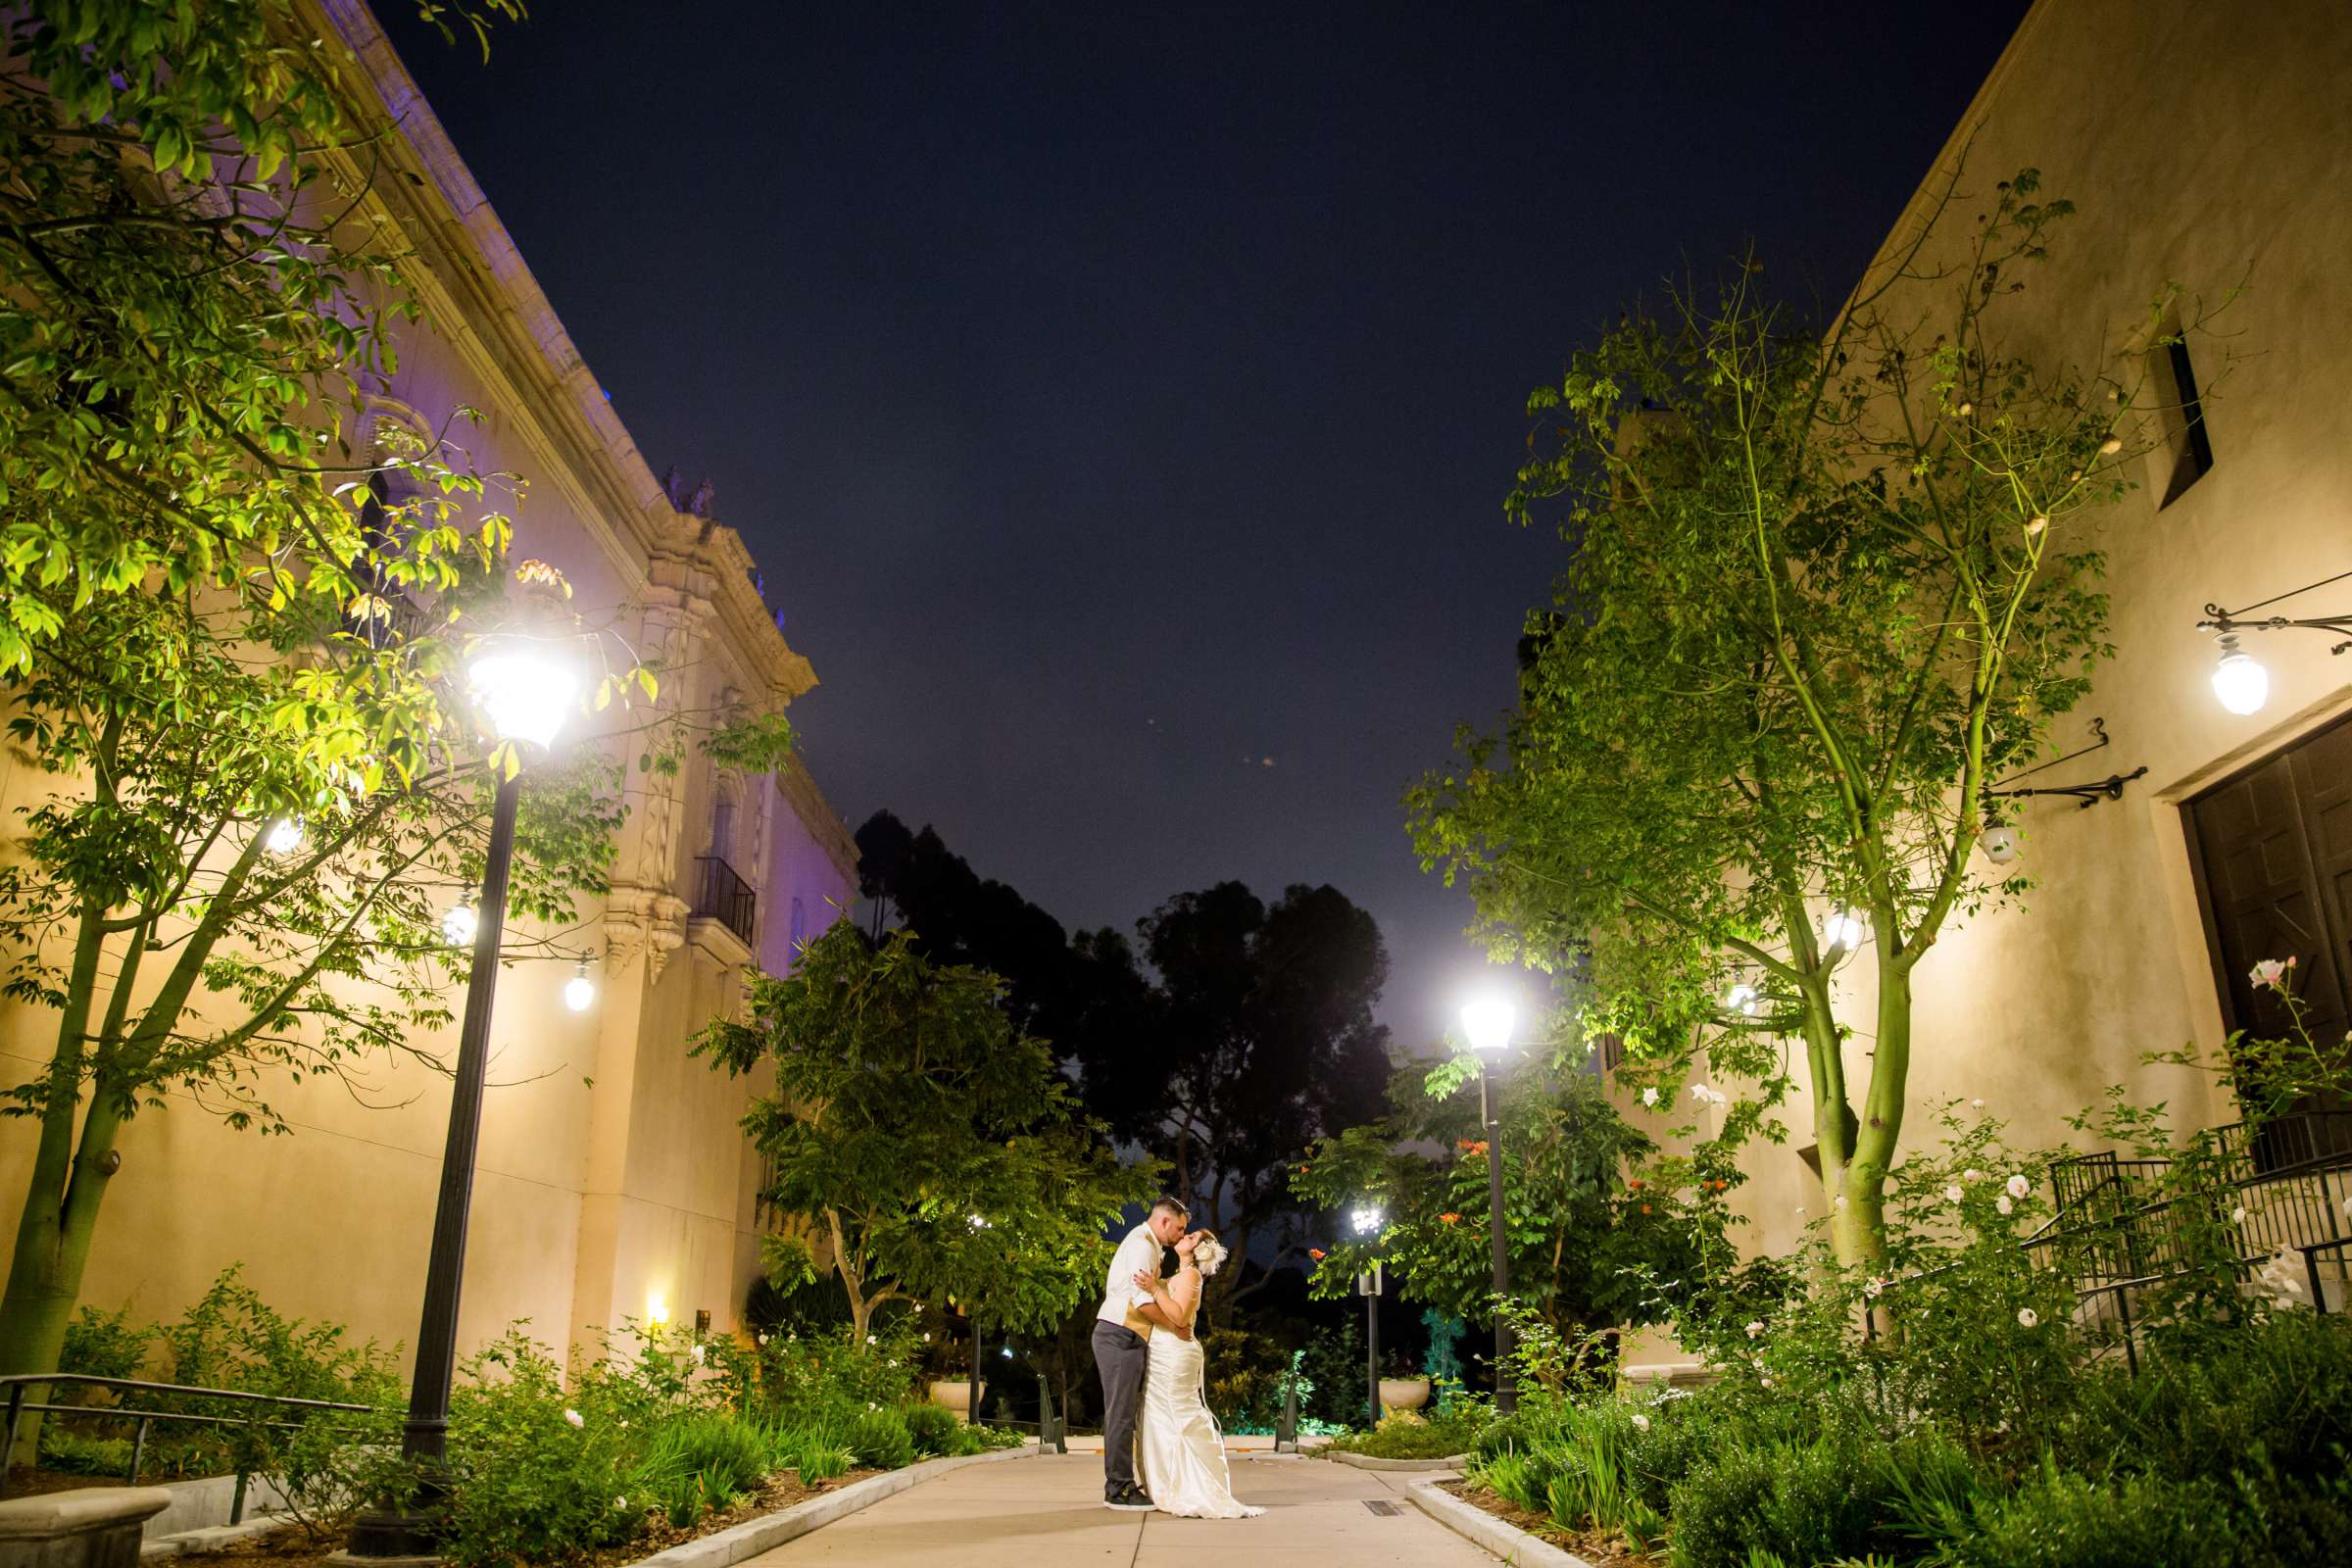 The Prado Wedding coordinated by Breezy Day Weddings, Aalis and Michael Wedding Photo #1 by True Photography